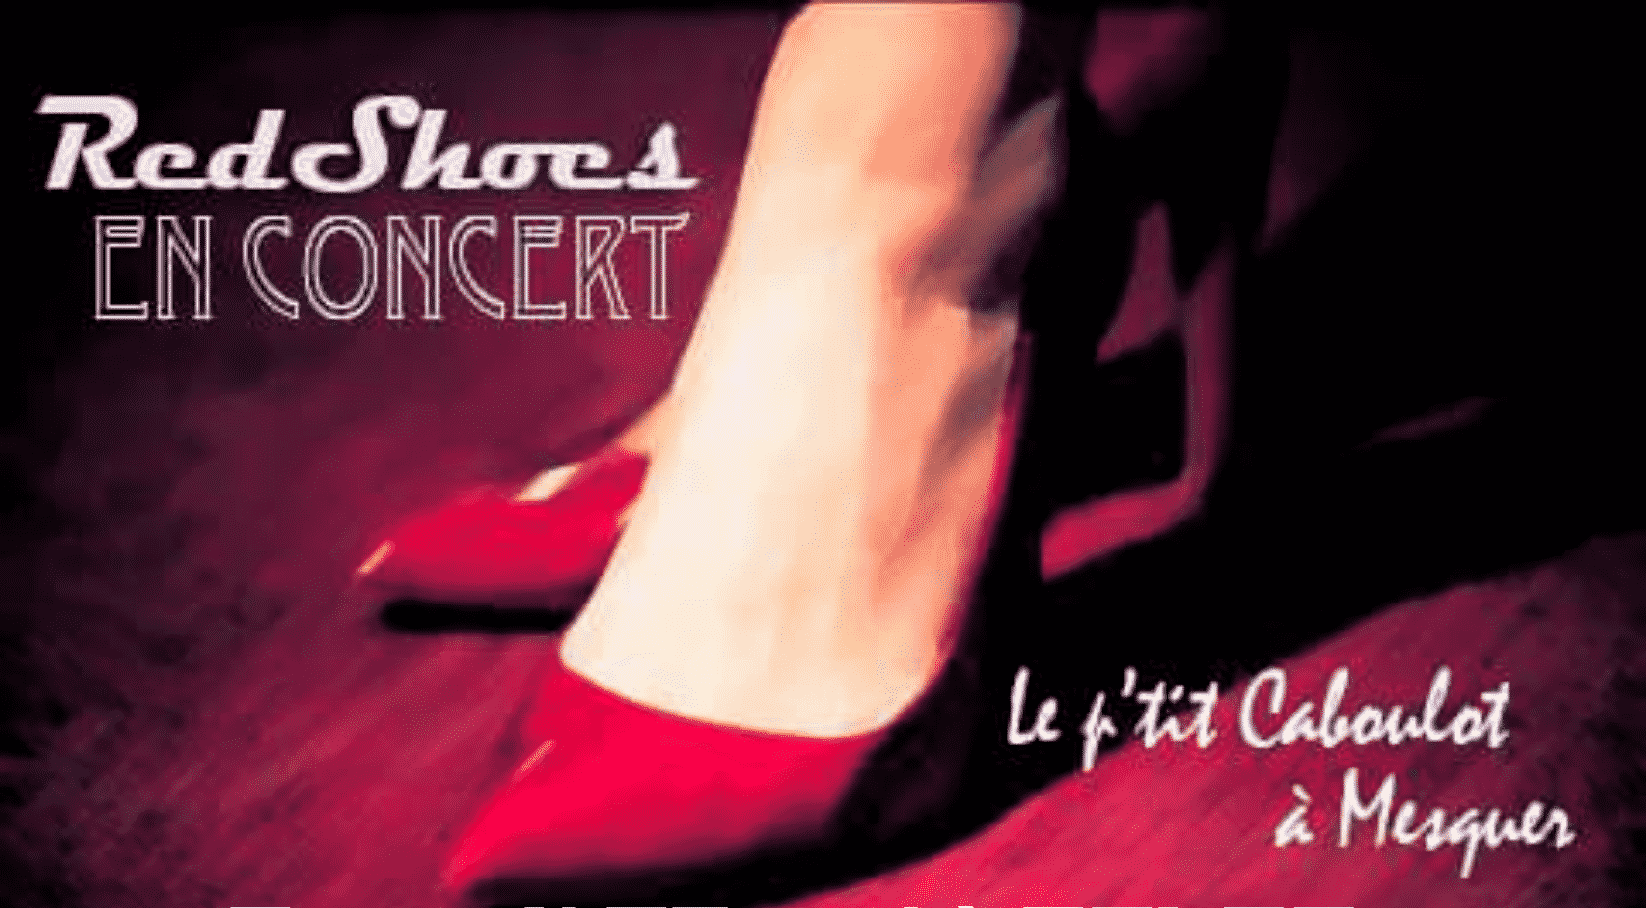 Restaurant Brasserie Le P'tit Caboulot » RED SHOES EN CONCERT